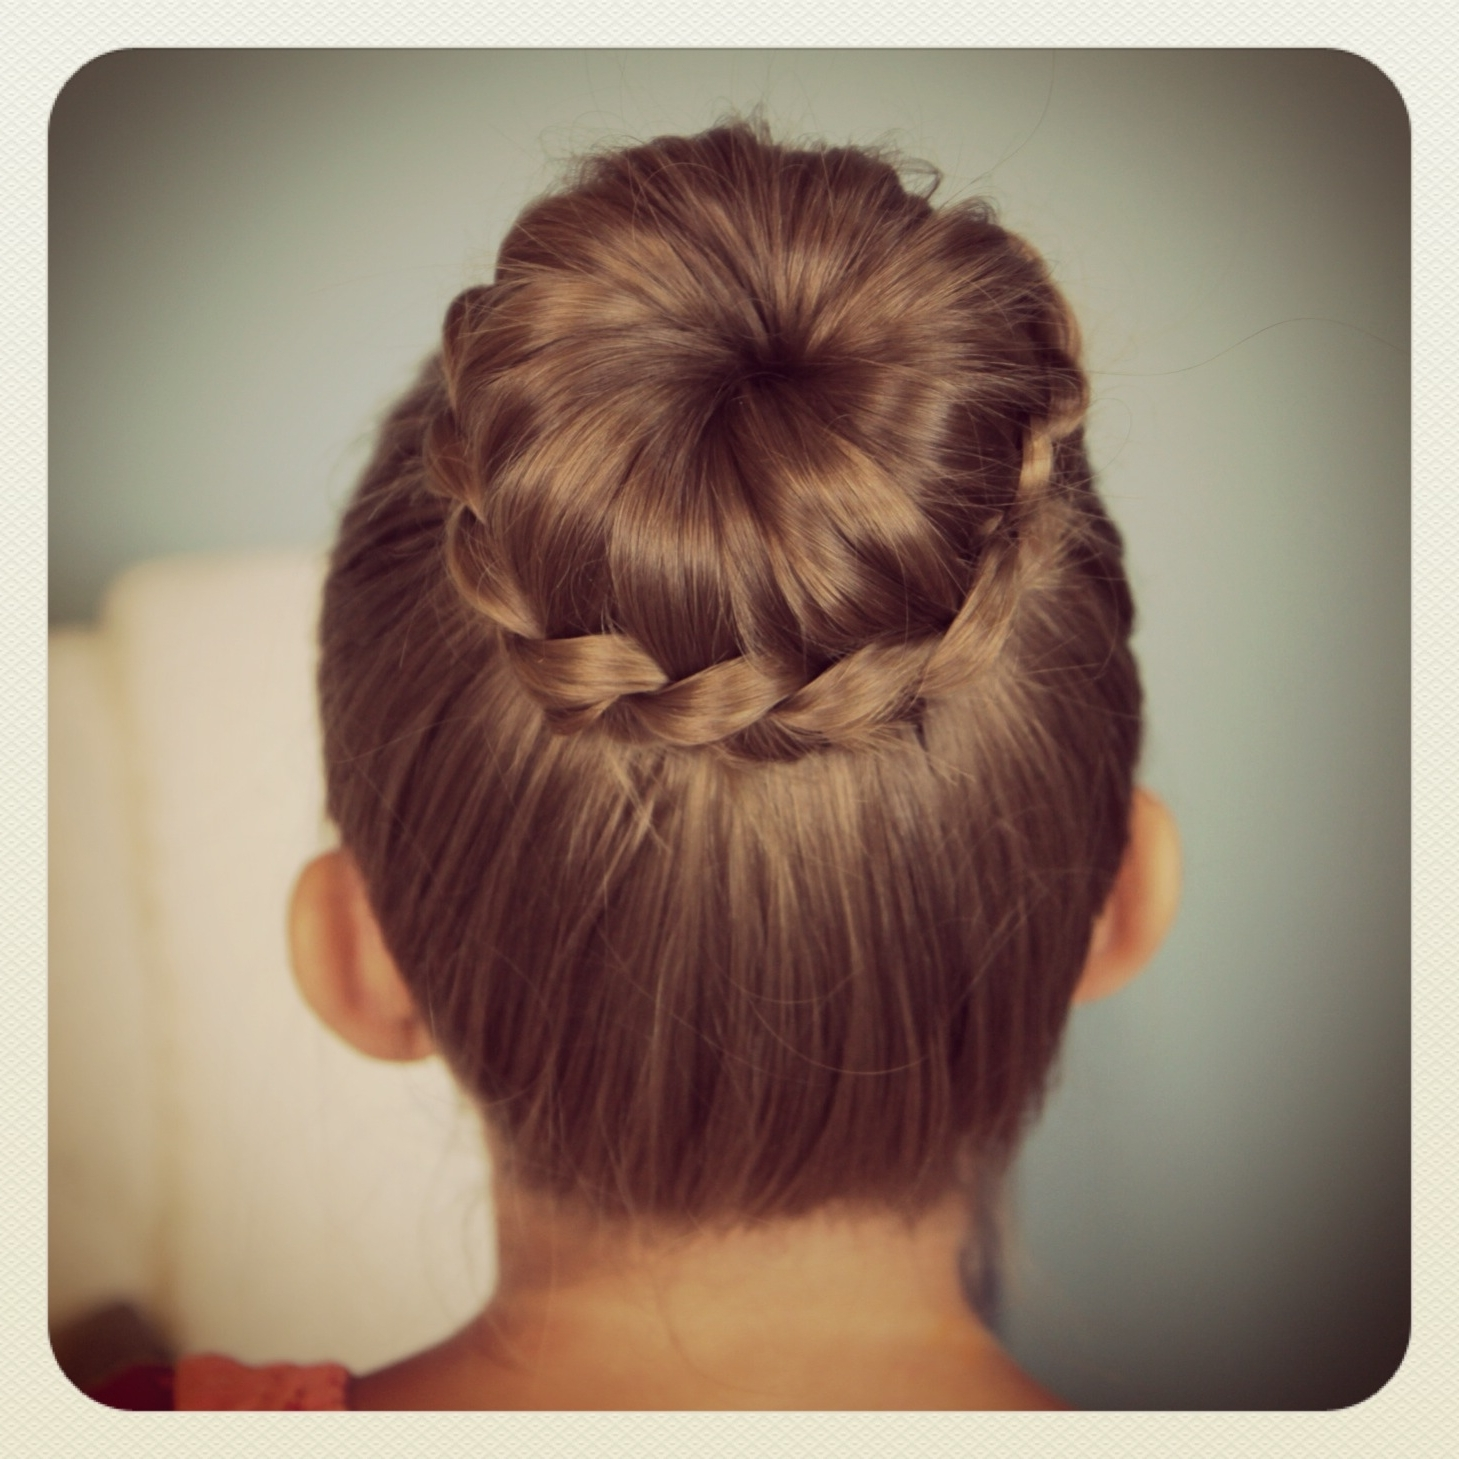 Cute Back To School Hair Cuts | Lace Braided Bun | Cute Updo With Regard To Easy Updo Hairstyles For Kids (View 6 of 15)